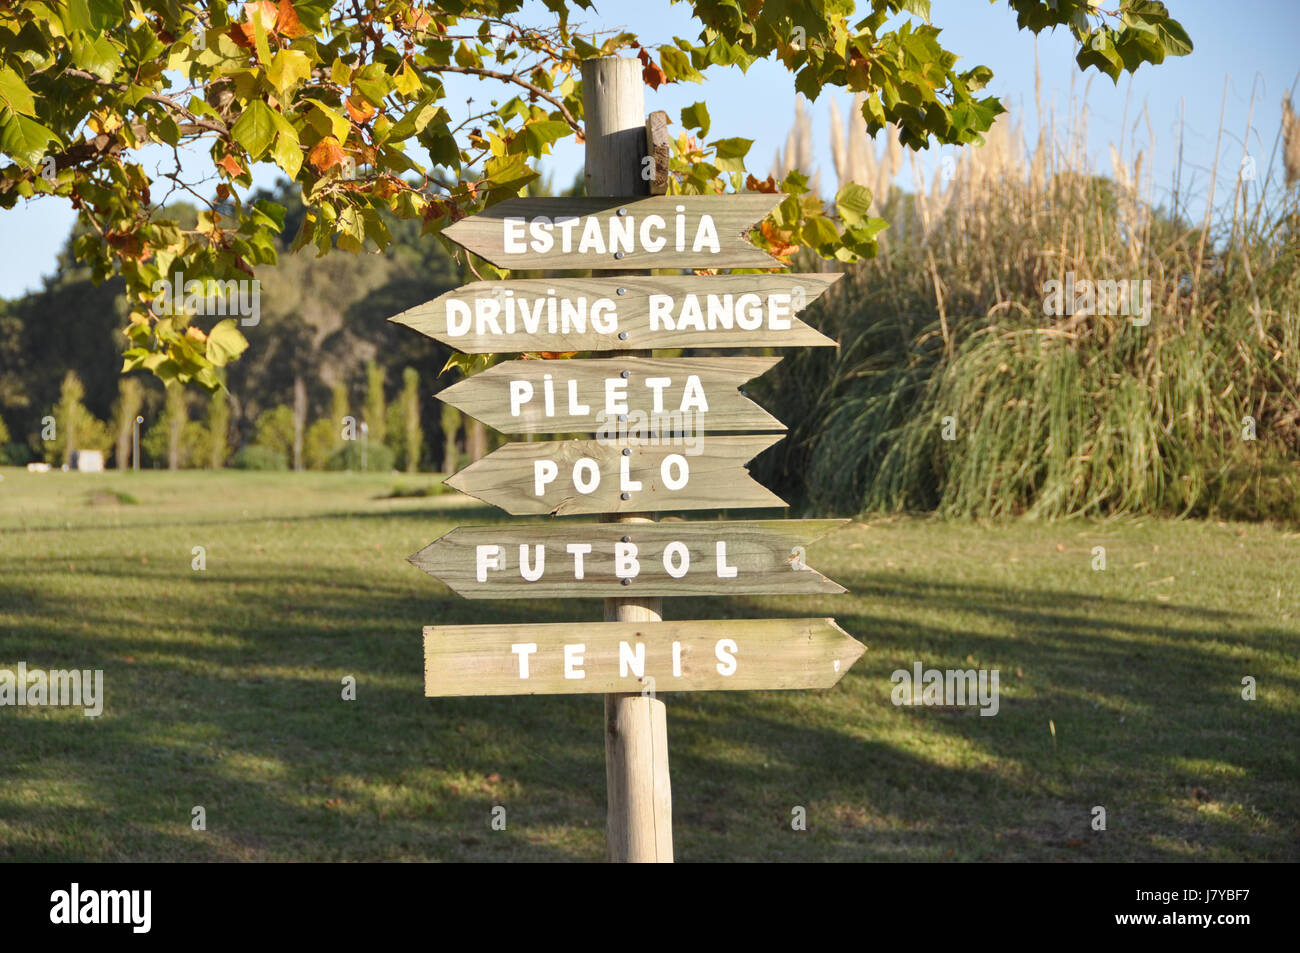 Multi-directional wooden sign in country club indicating various sporting activities in Spanish with green natural - Stock Image